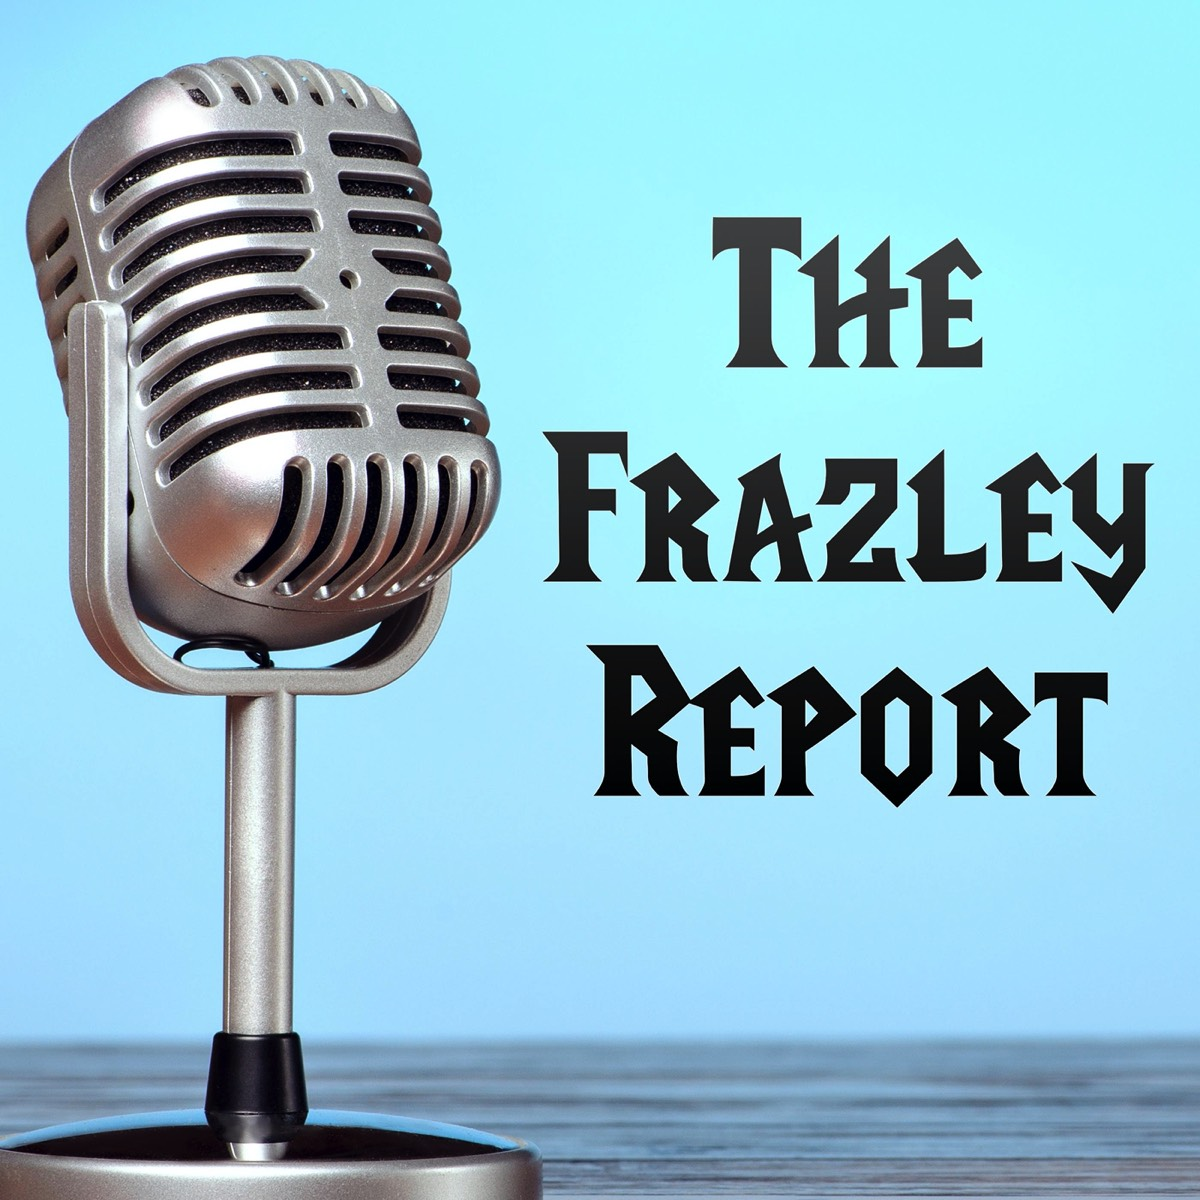 The Frazley Report